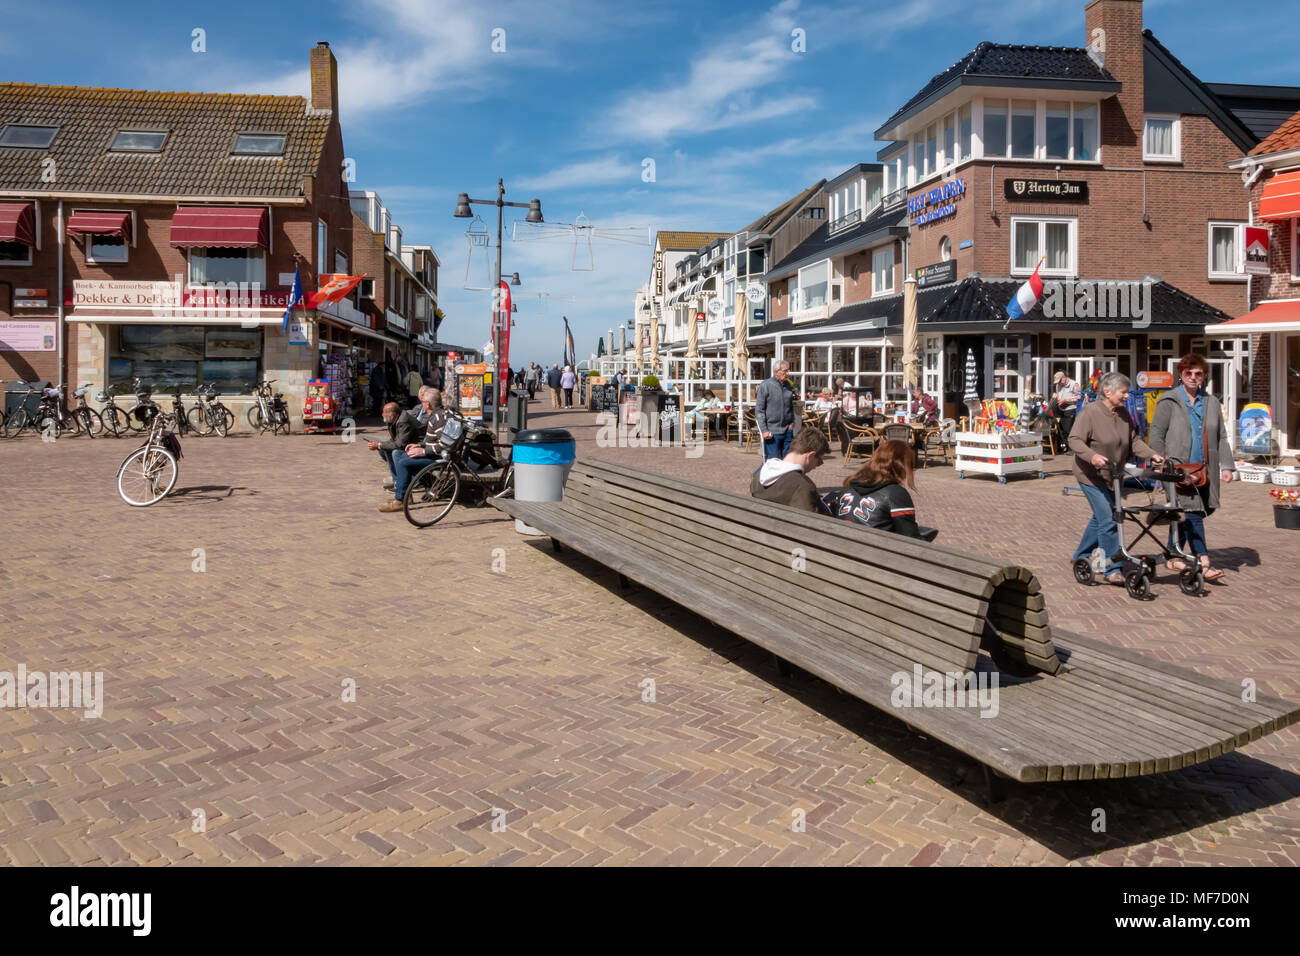 Egmond aan Zee , Noord Holland / The Netherlands - April 24th 2018 : A popular seaside resort on the north west coast of Holland. Tourists enjoying a drink at the local cafe's and restaurants. - Stock Image